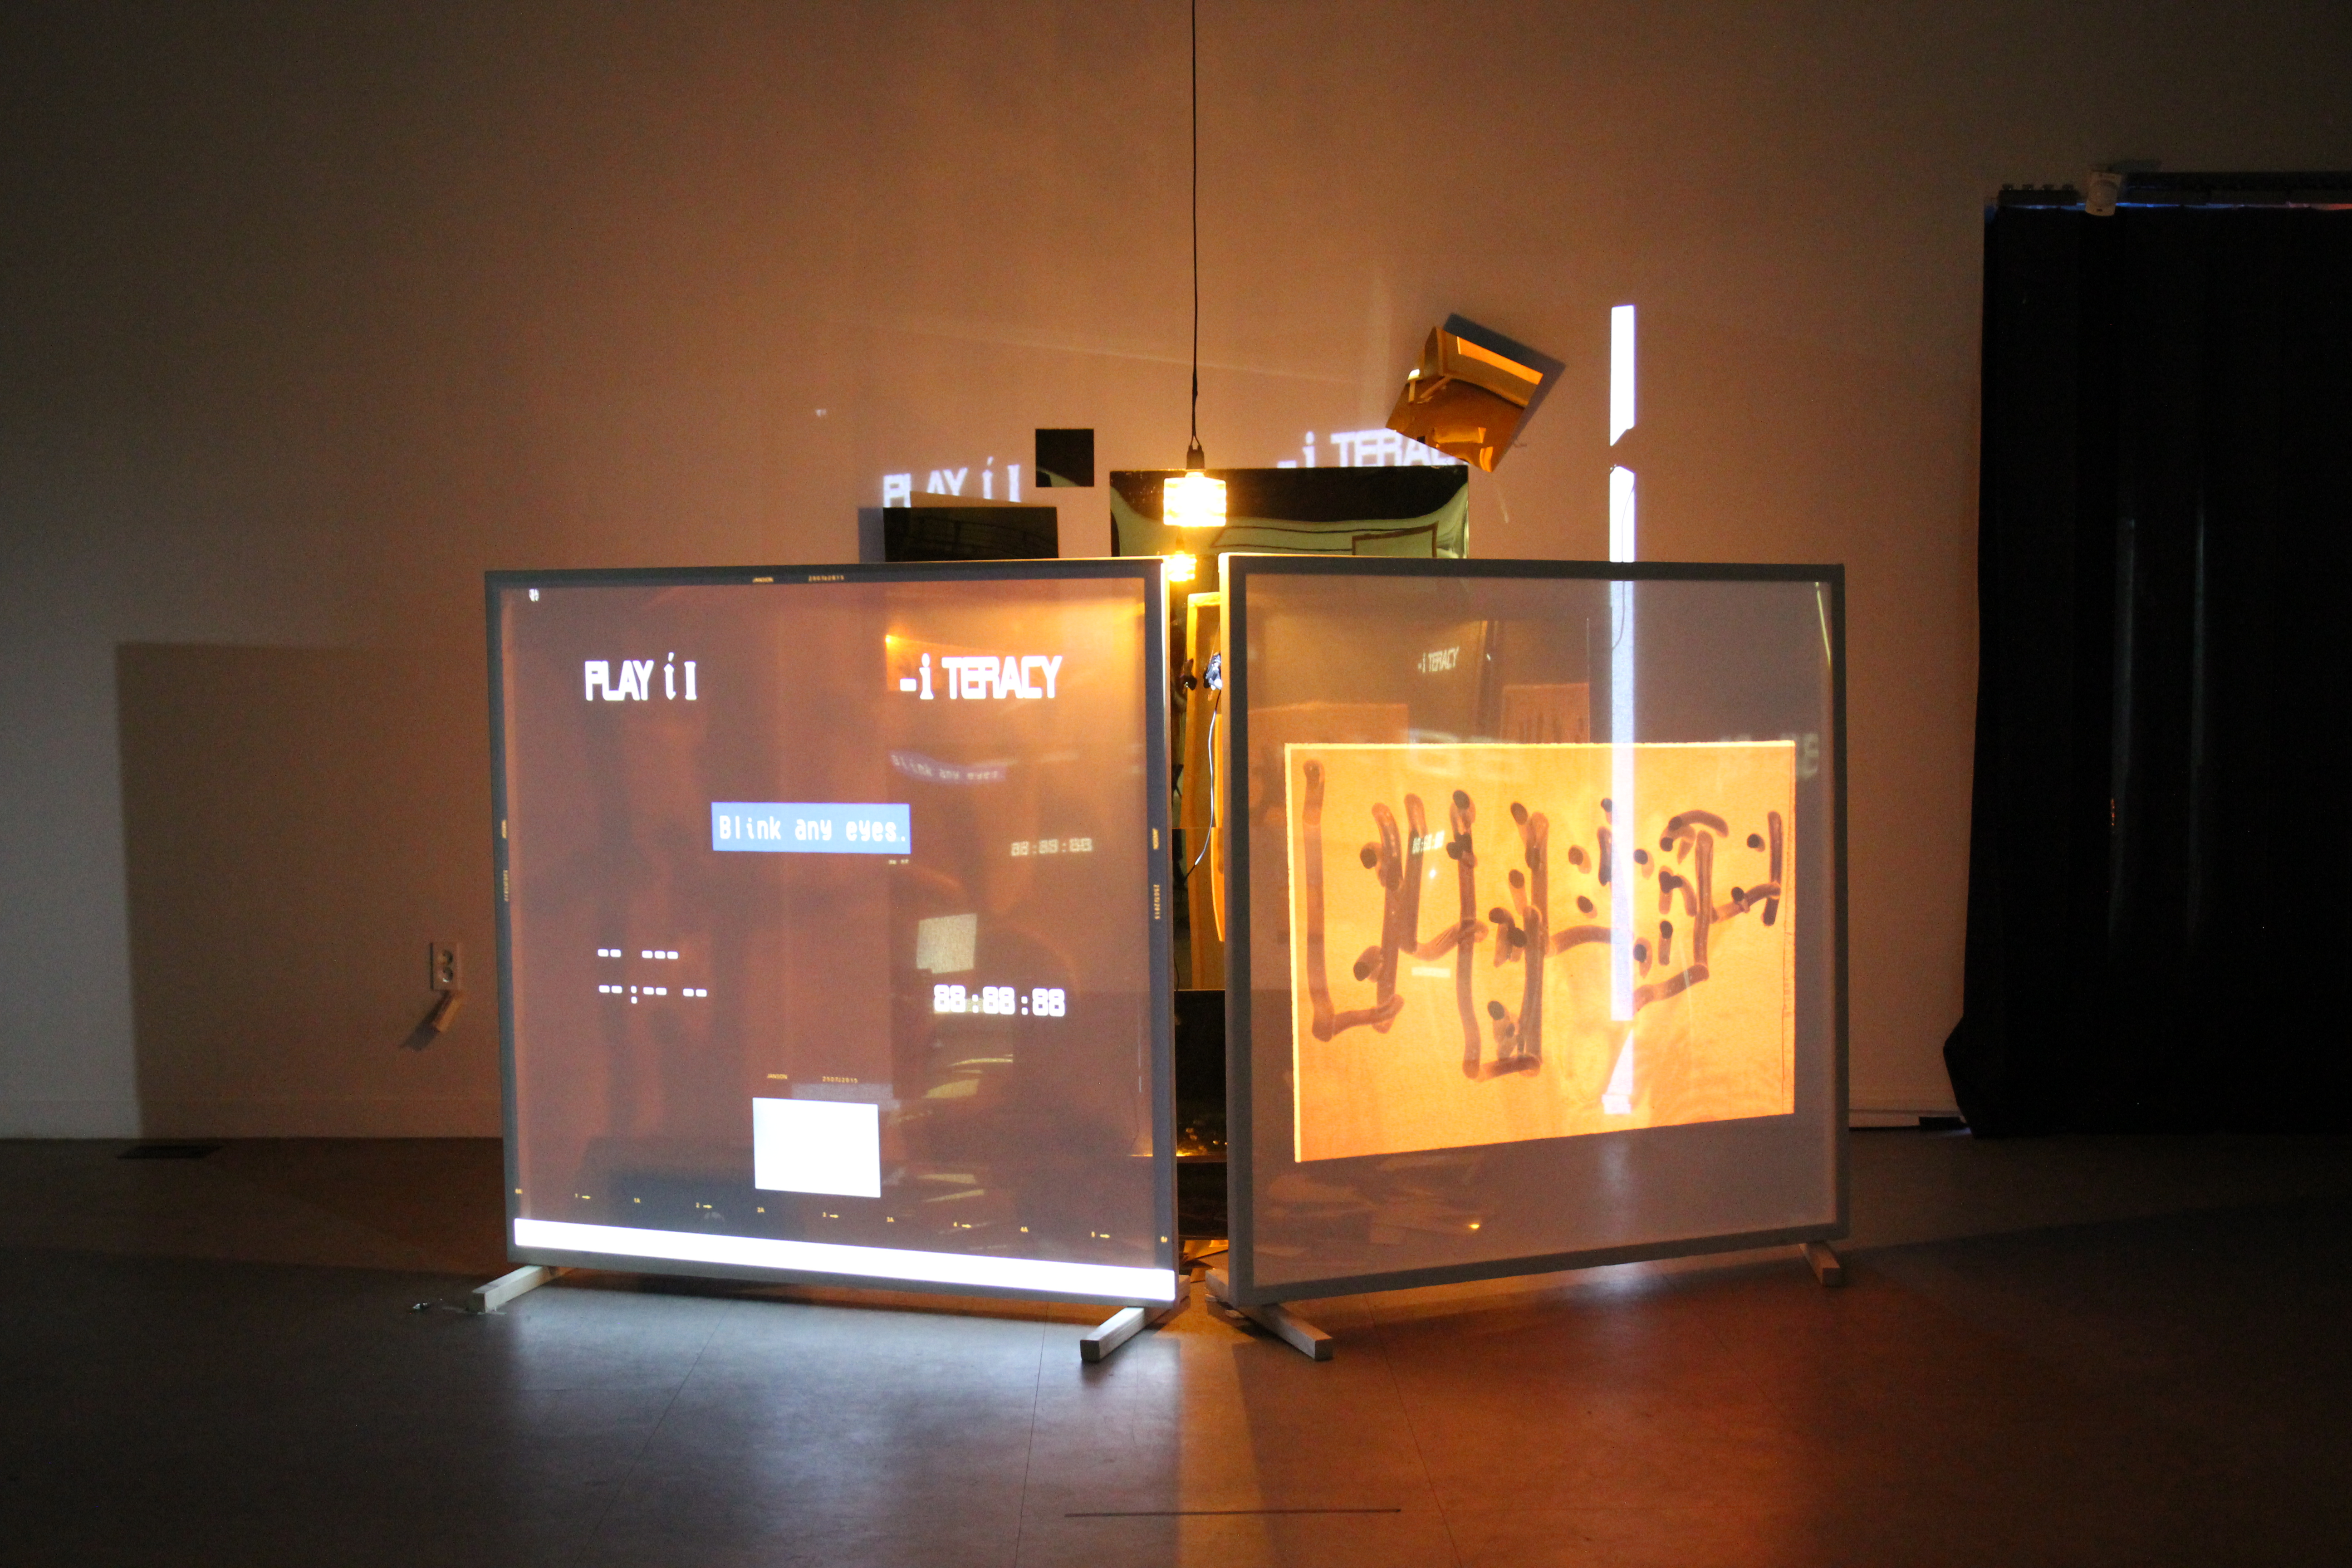 Two screens display projections of scrambled text, lit from behind by reflective metal and light